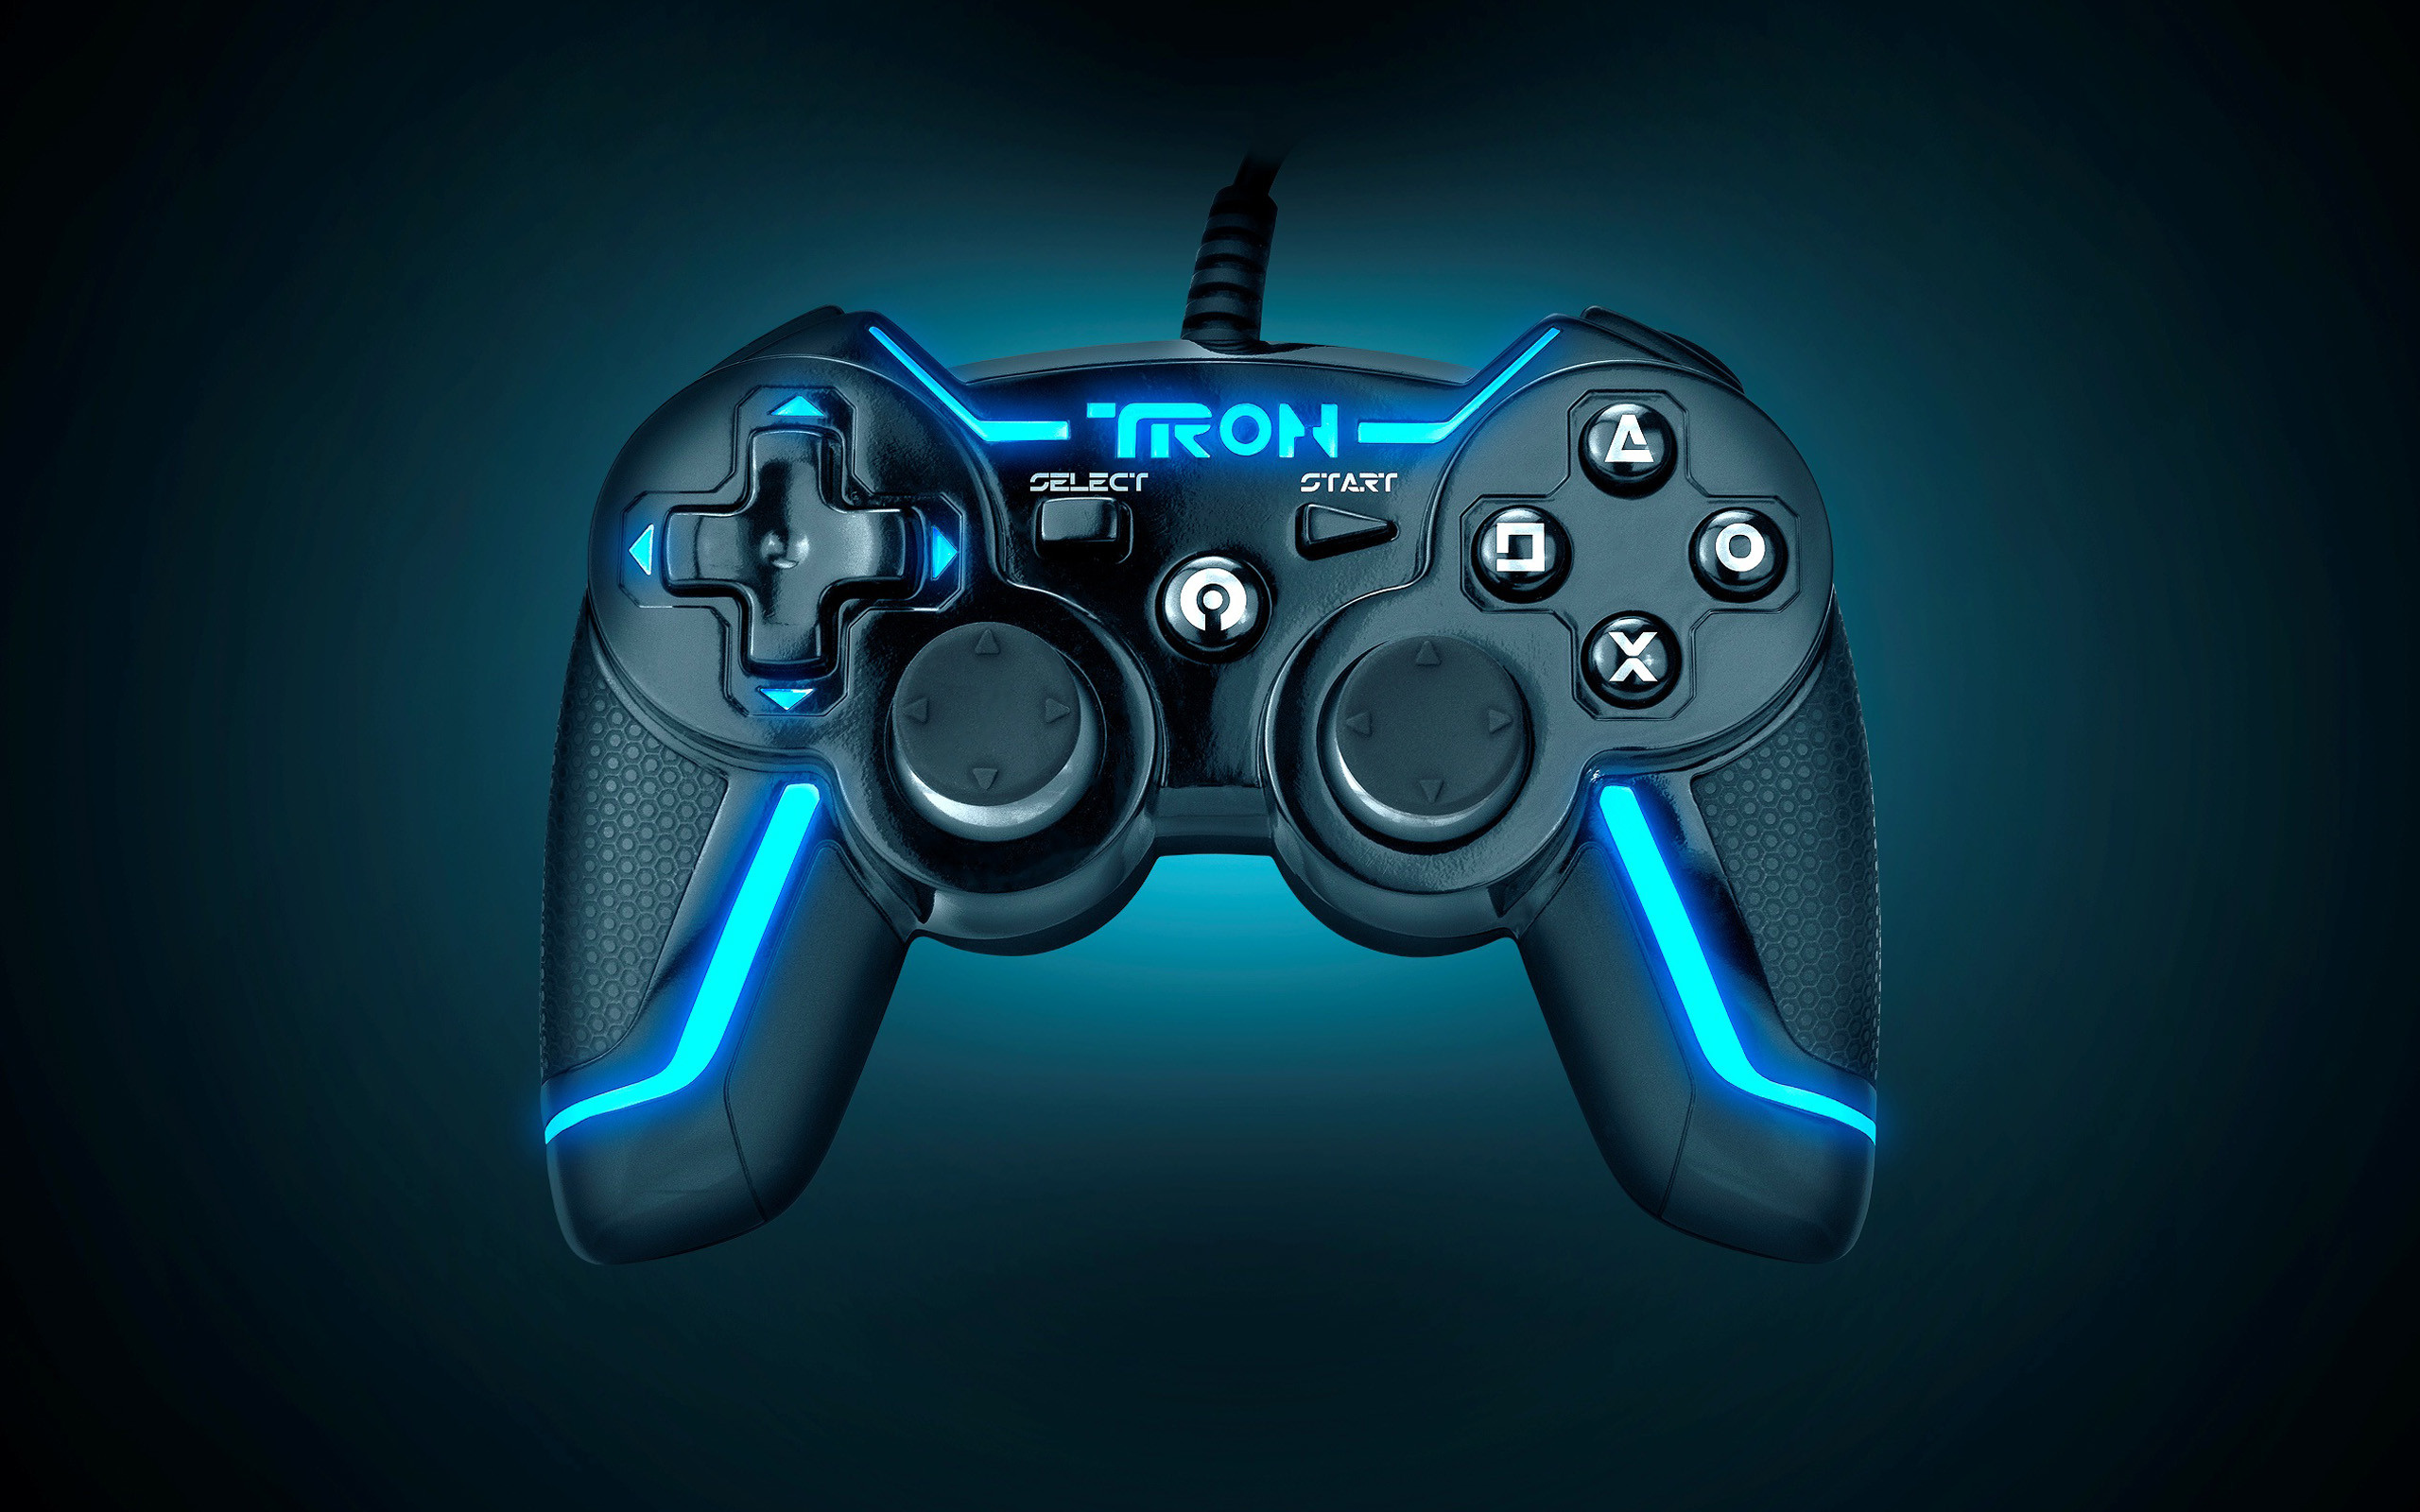 Game Controller Wallpaper 76 Images